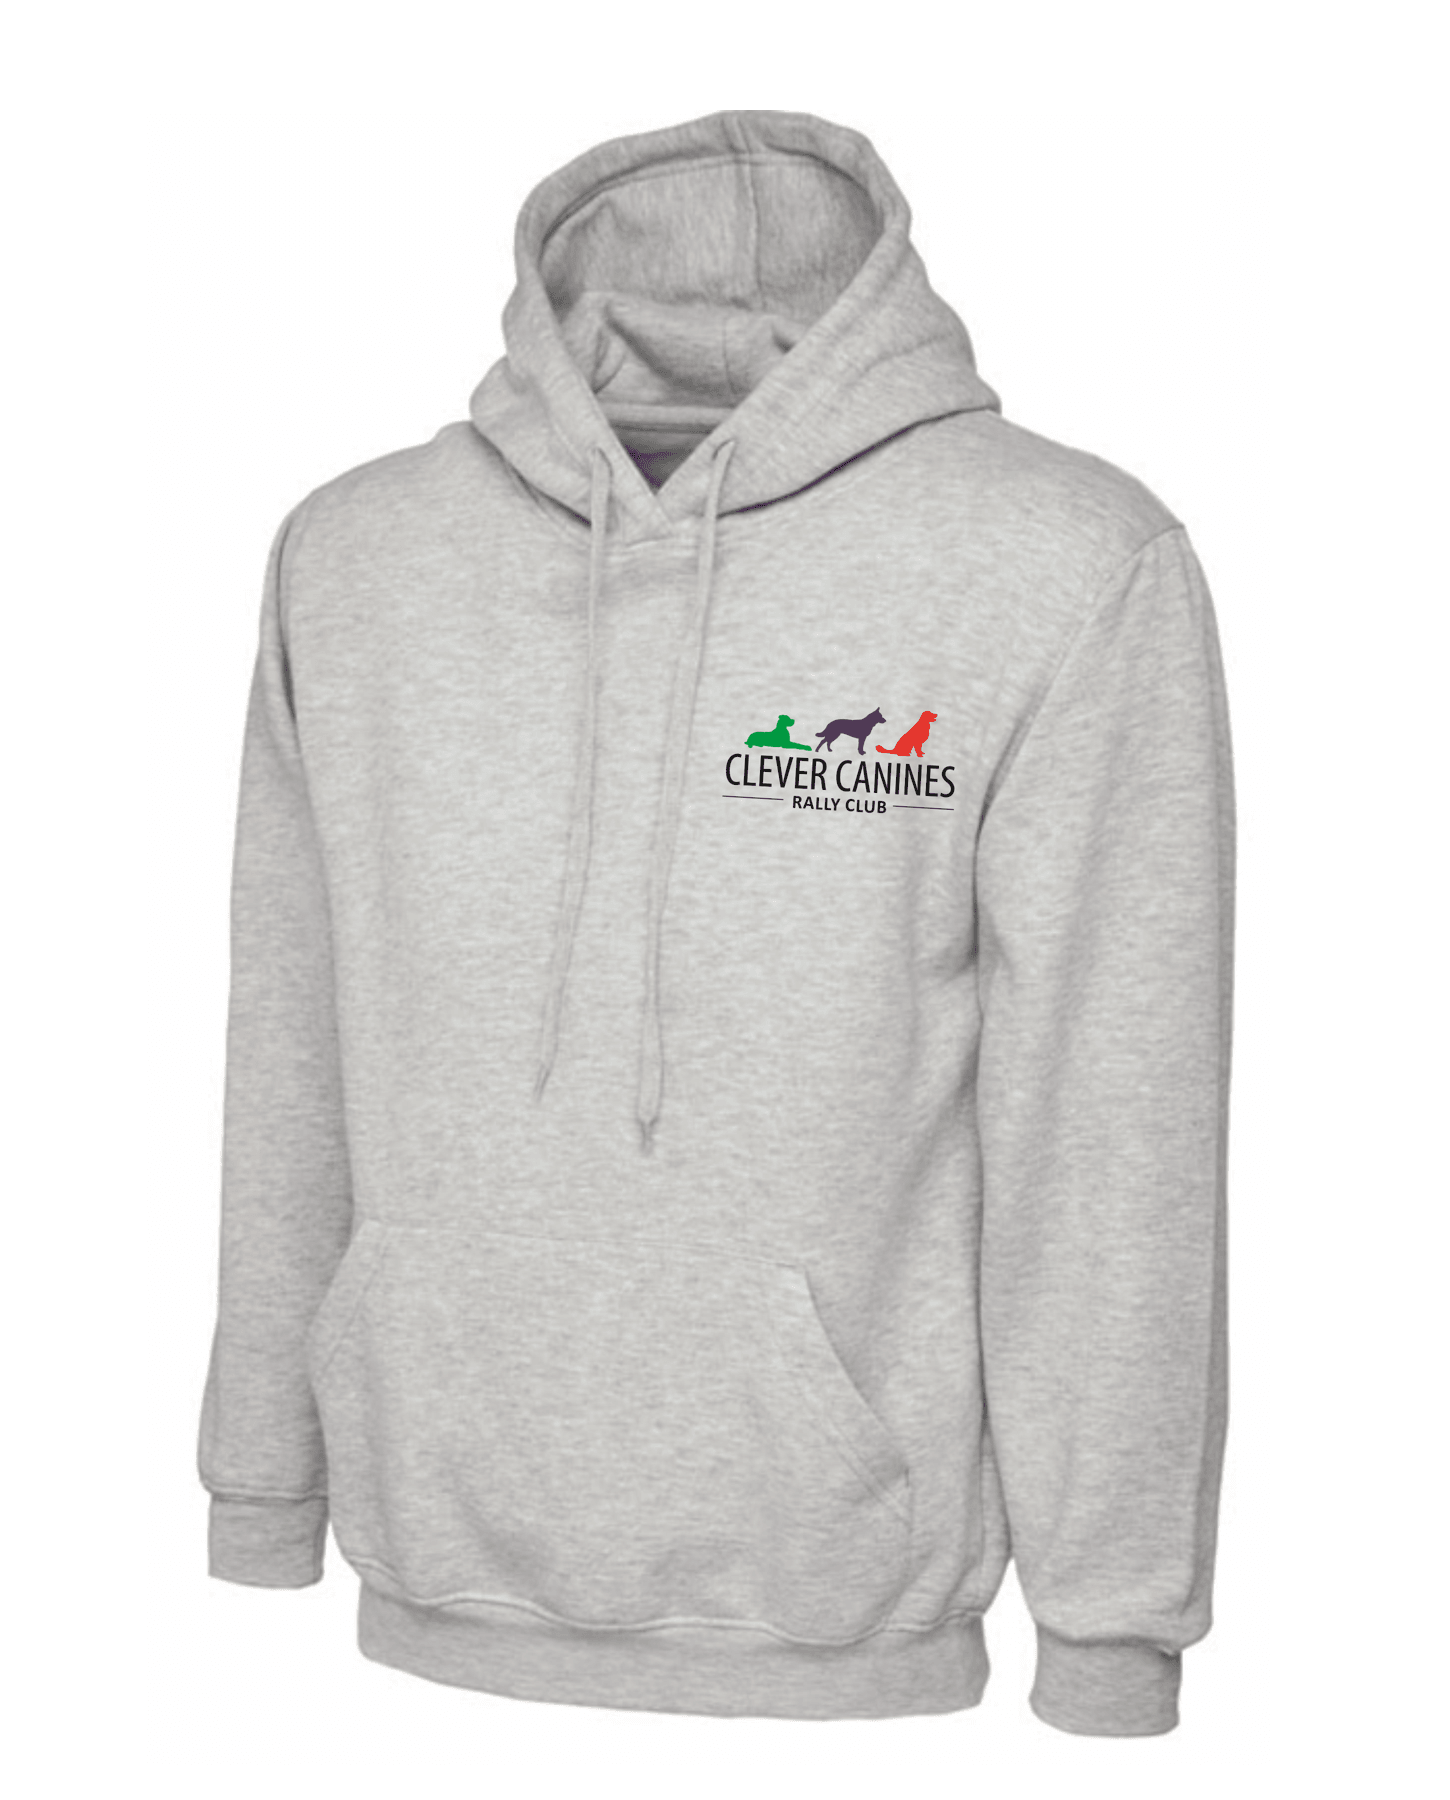 Clever Canines Rally Club - Hoodie